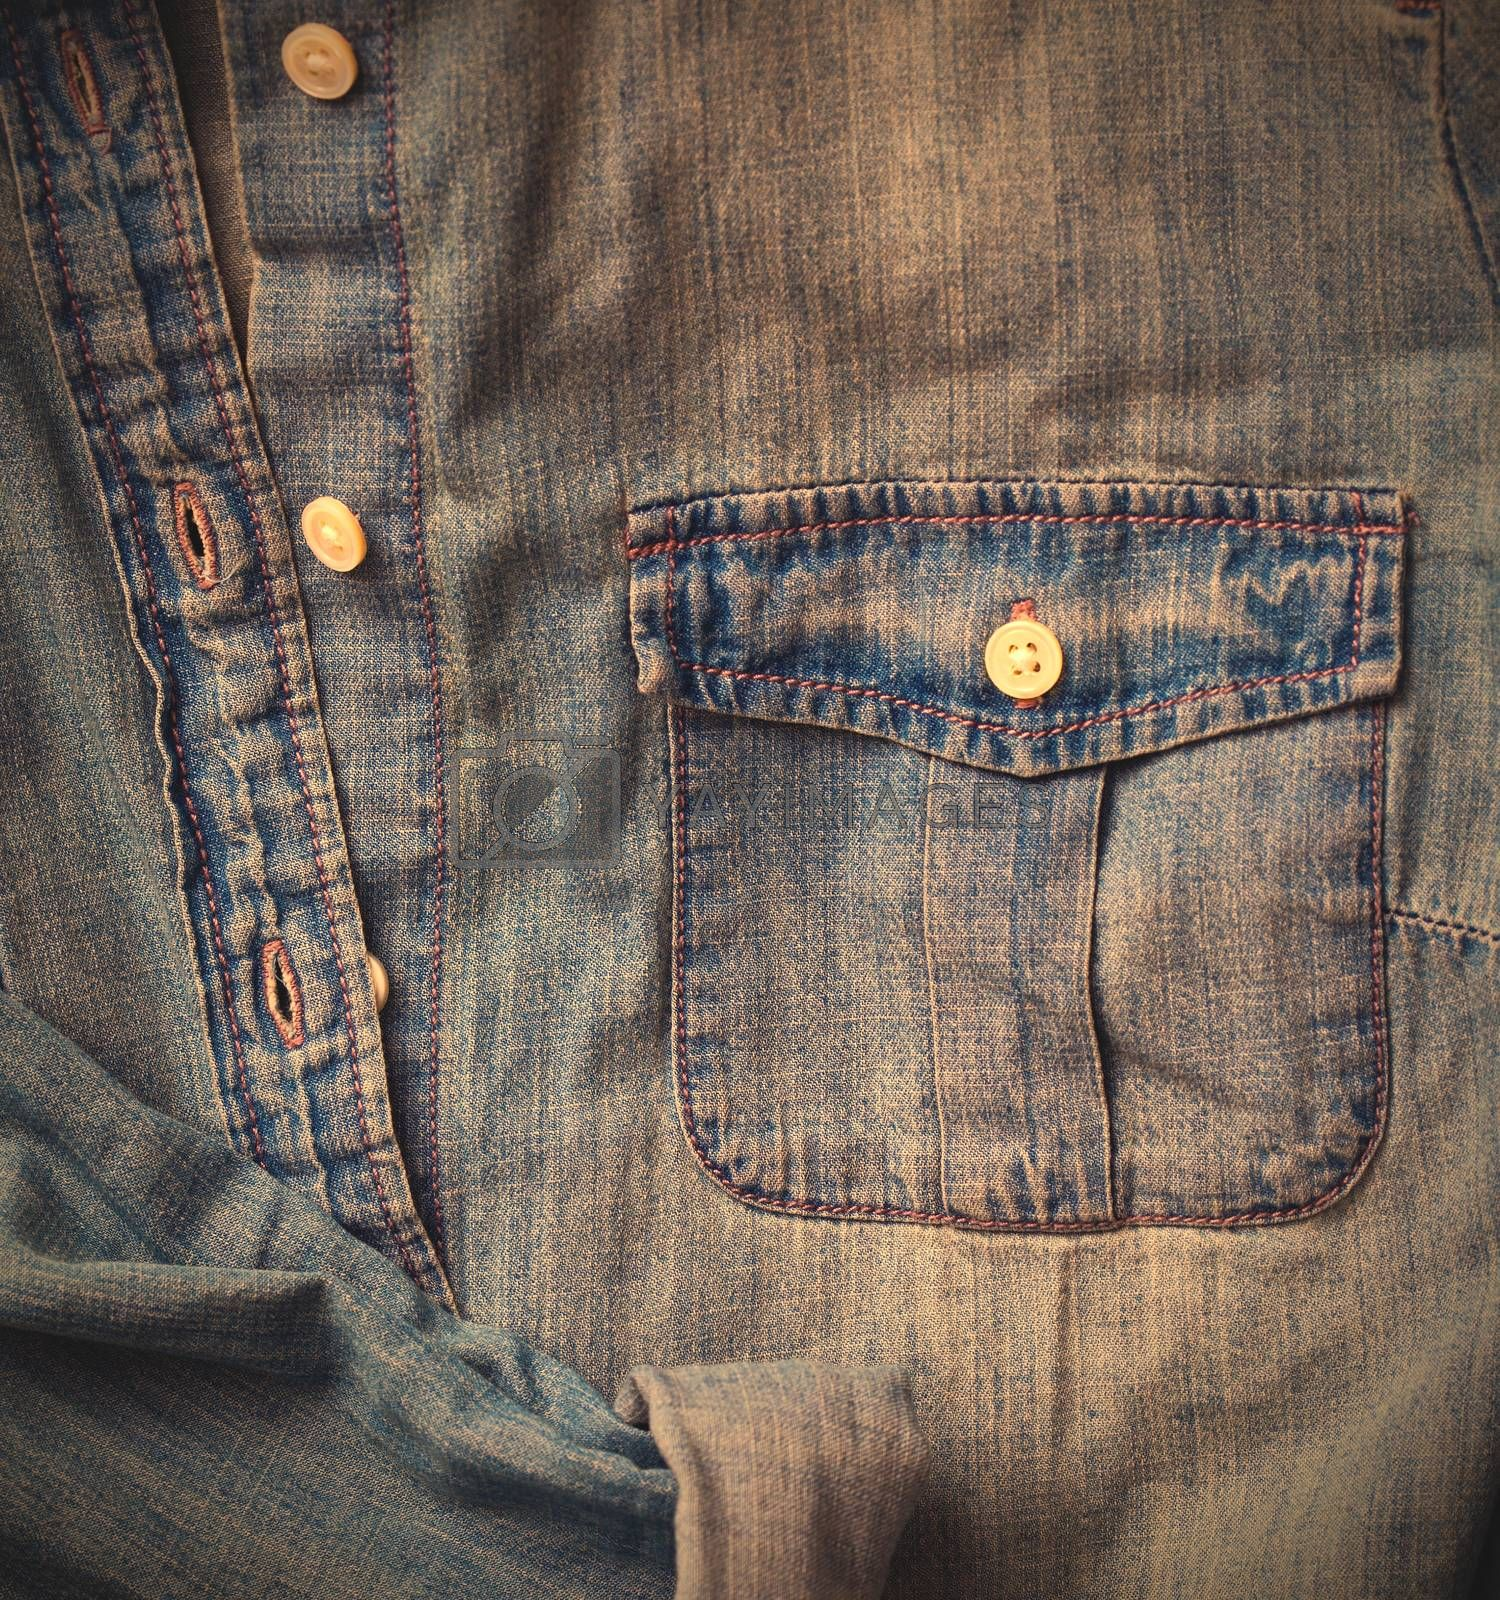 Jeans shirt close up, part of. instagram image retro style